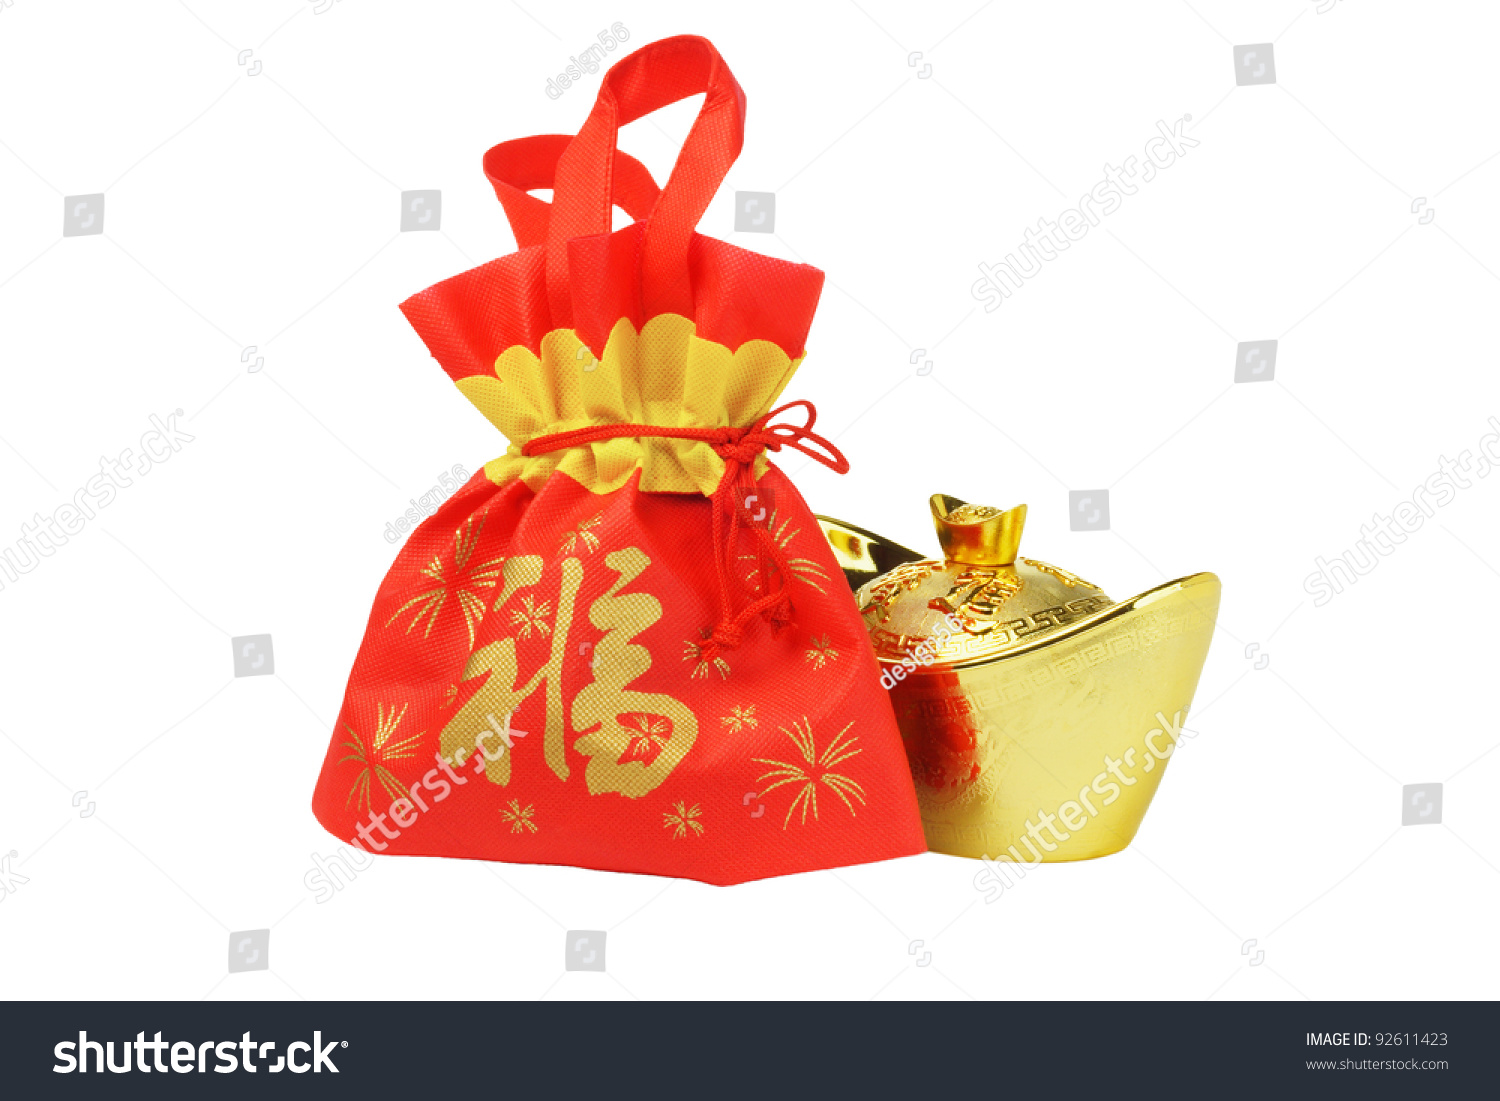 Chinese New Year Gift Bag Gold Stock Photo 92611423 Shutterstock